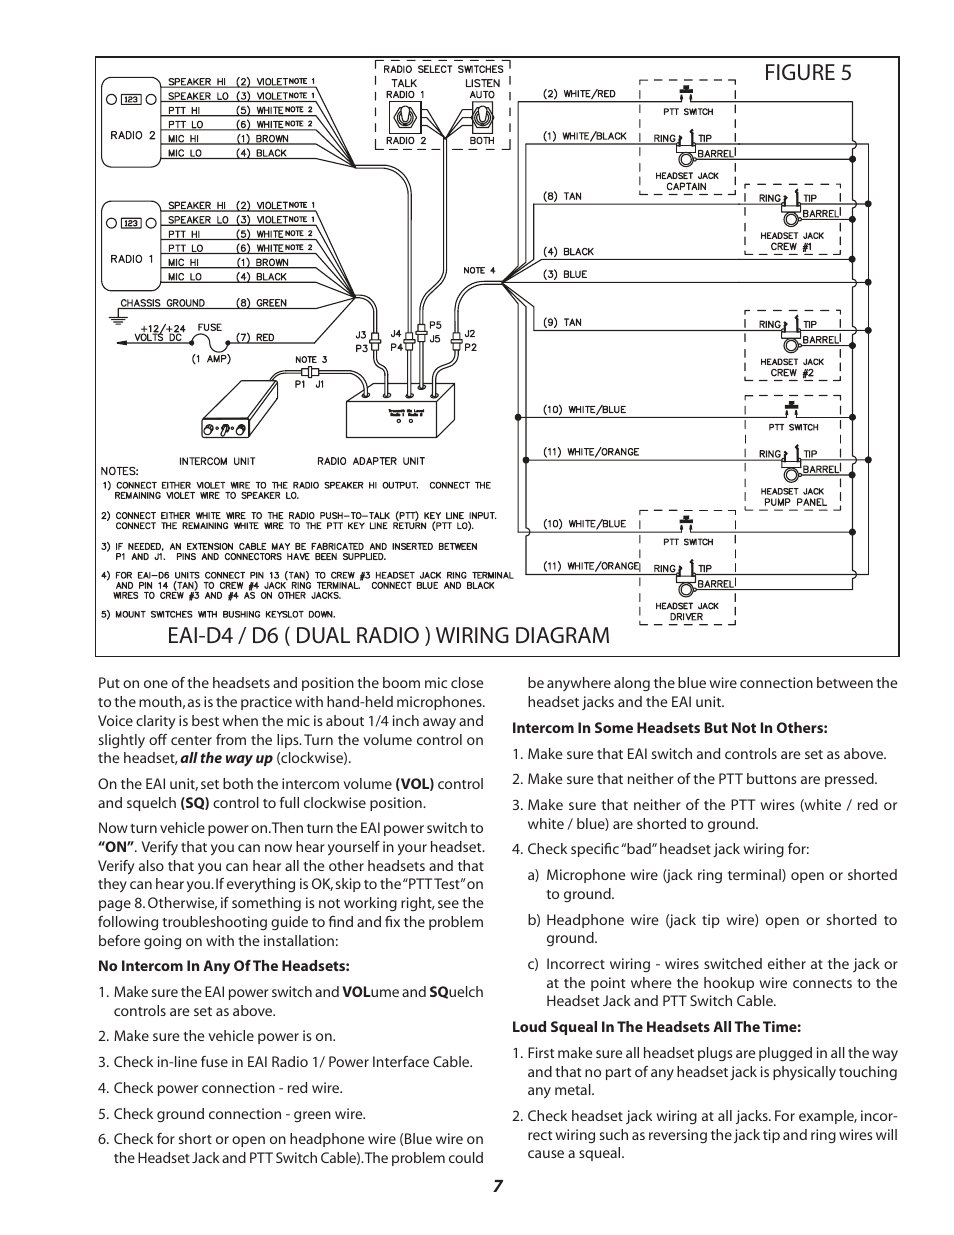 figure 5 eai d4 d6 dual radio wiring diagram sigtronics eai operating user